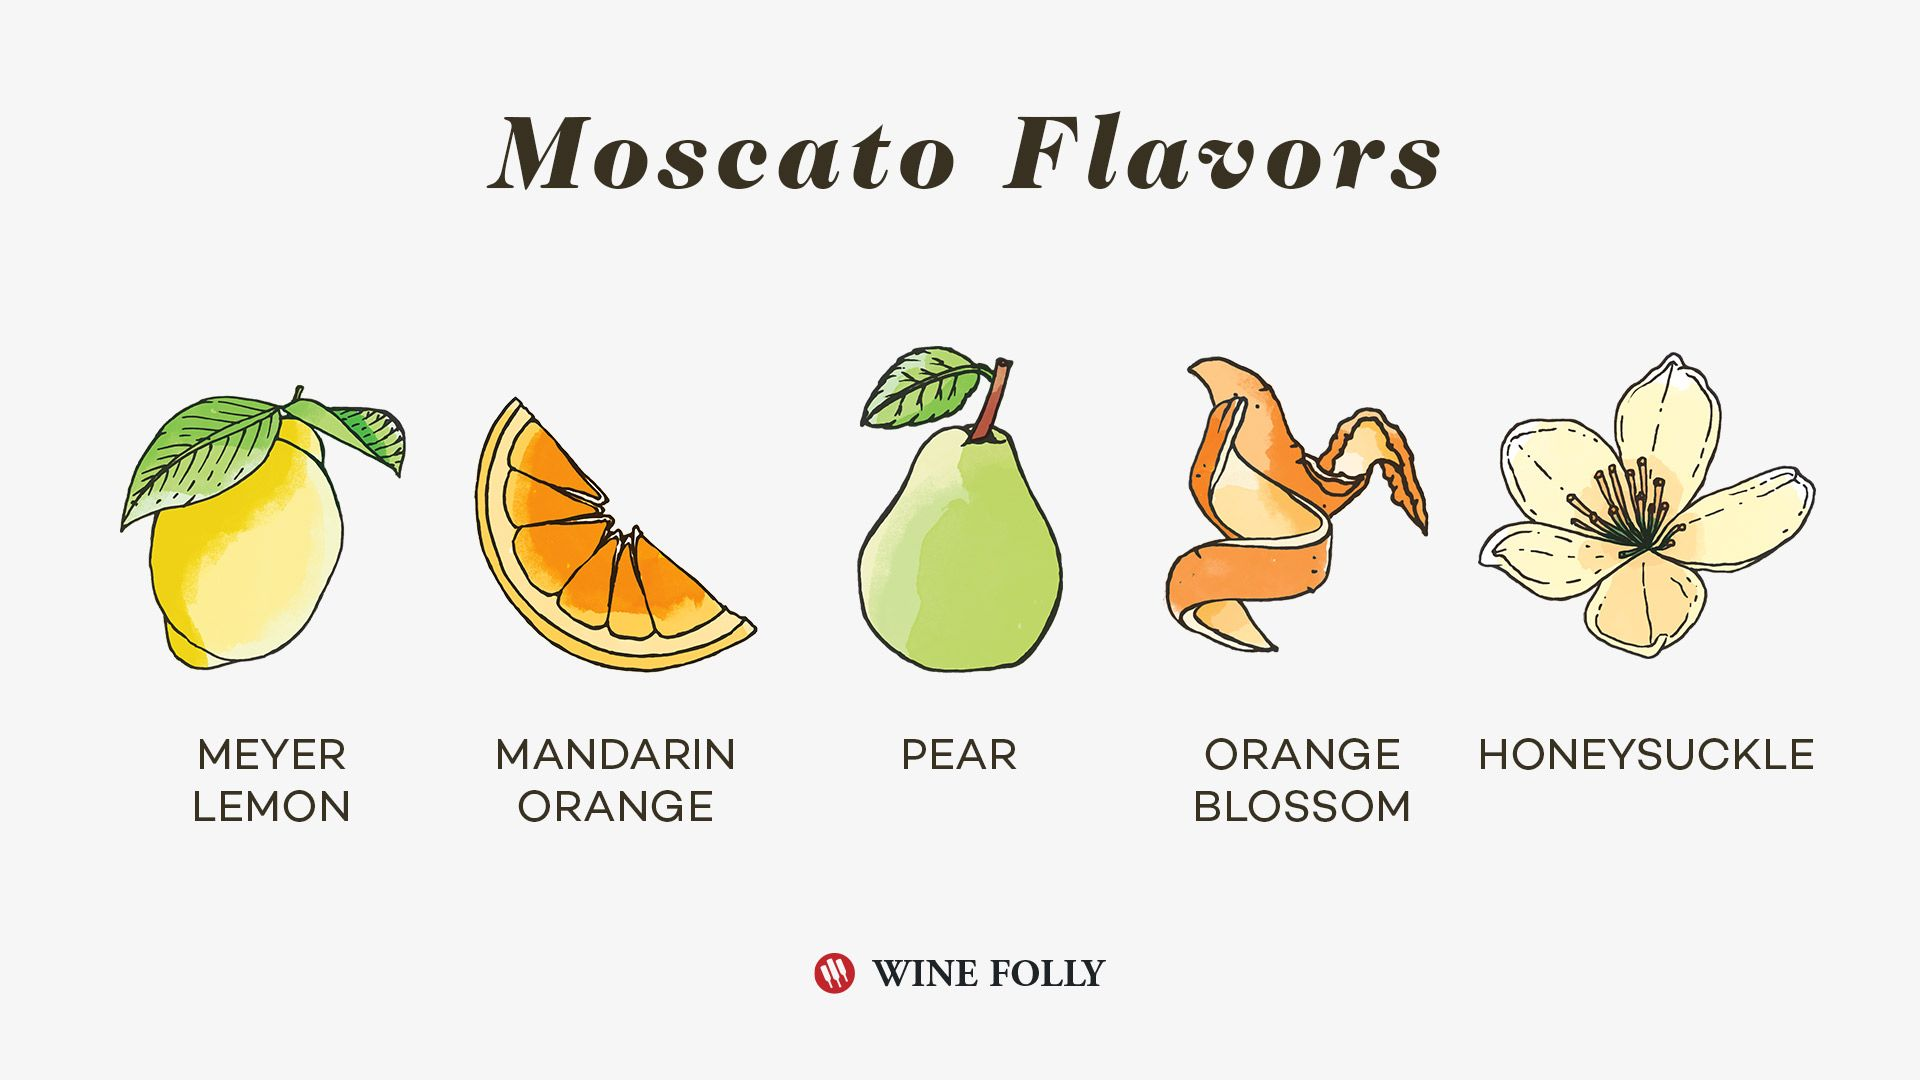 Moscato flavours (Wine Folly)